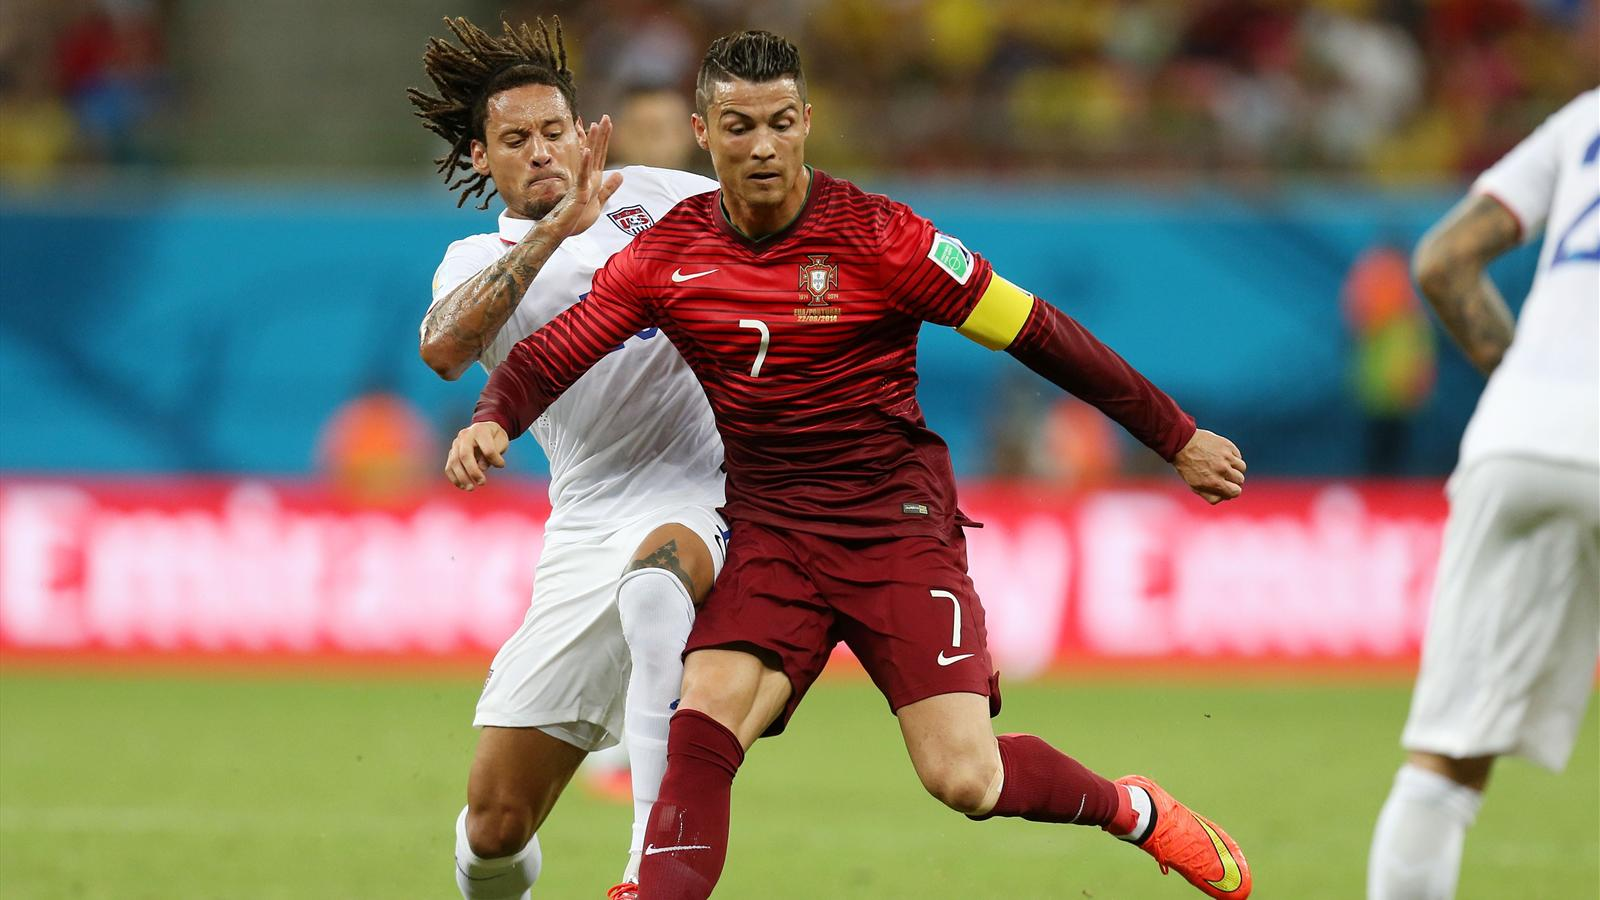 En direct live etats unis portugal coupe du monde - Portugal qualification coupe du monde ...